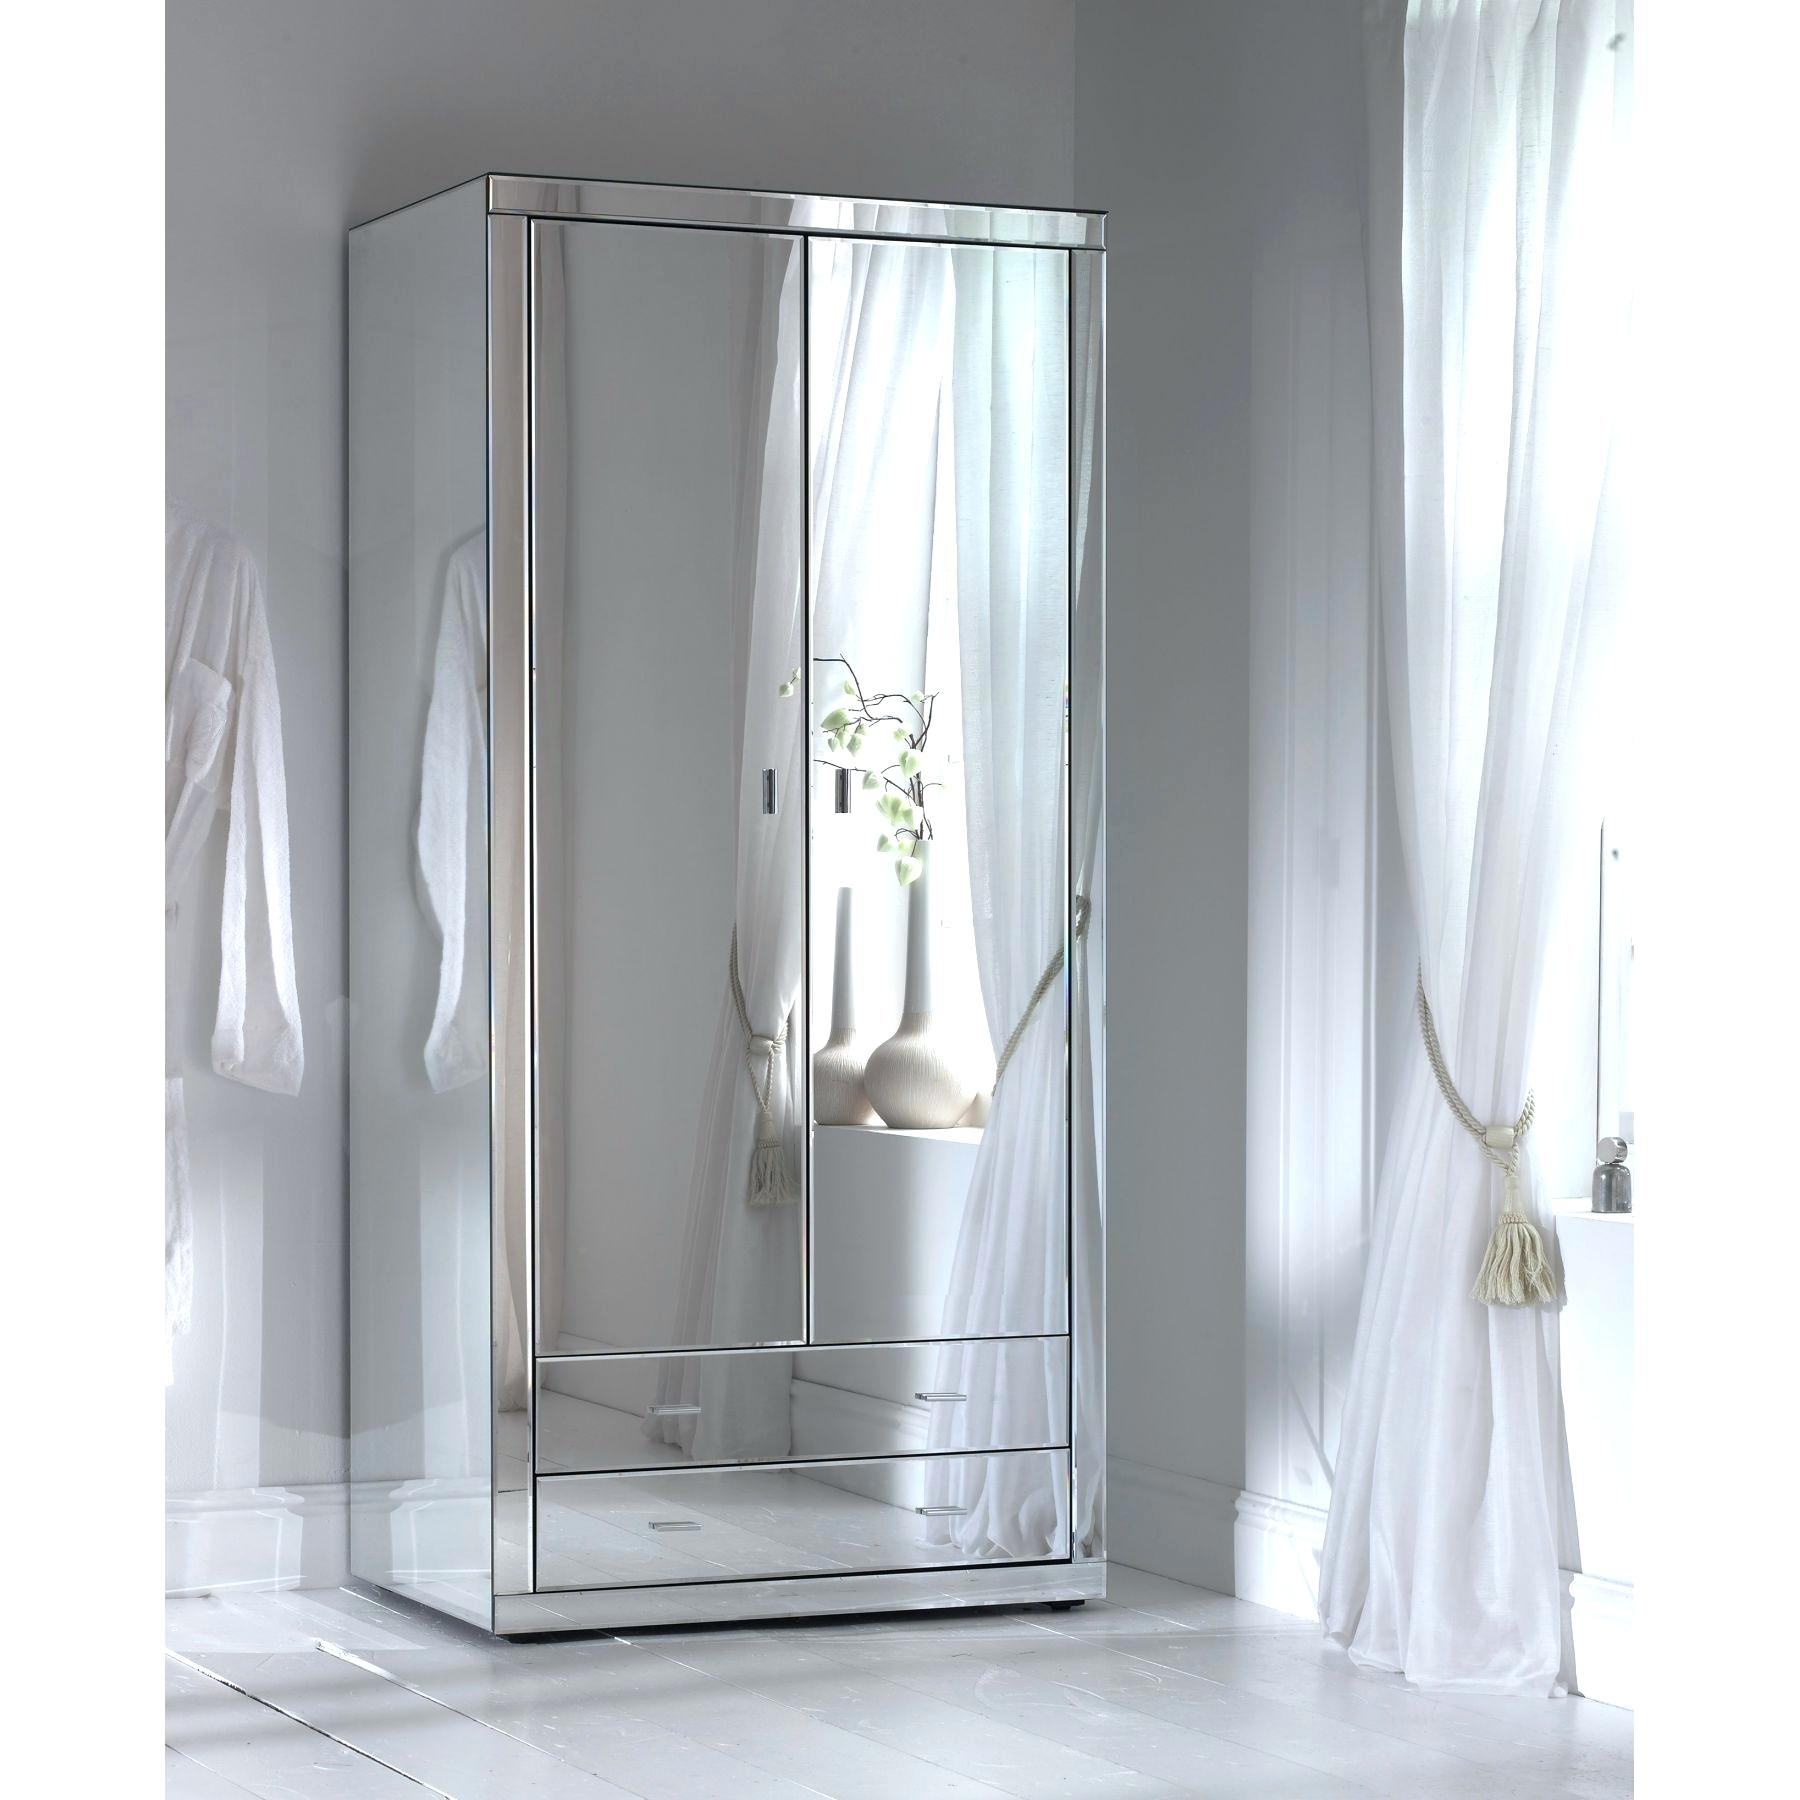 Unusual Shaped Mirror Full Size Of Wardrobewhite Sliding Door Intended For Unusual Shaped Mirrors (Photo 8 of 15)